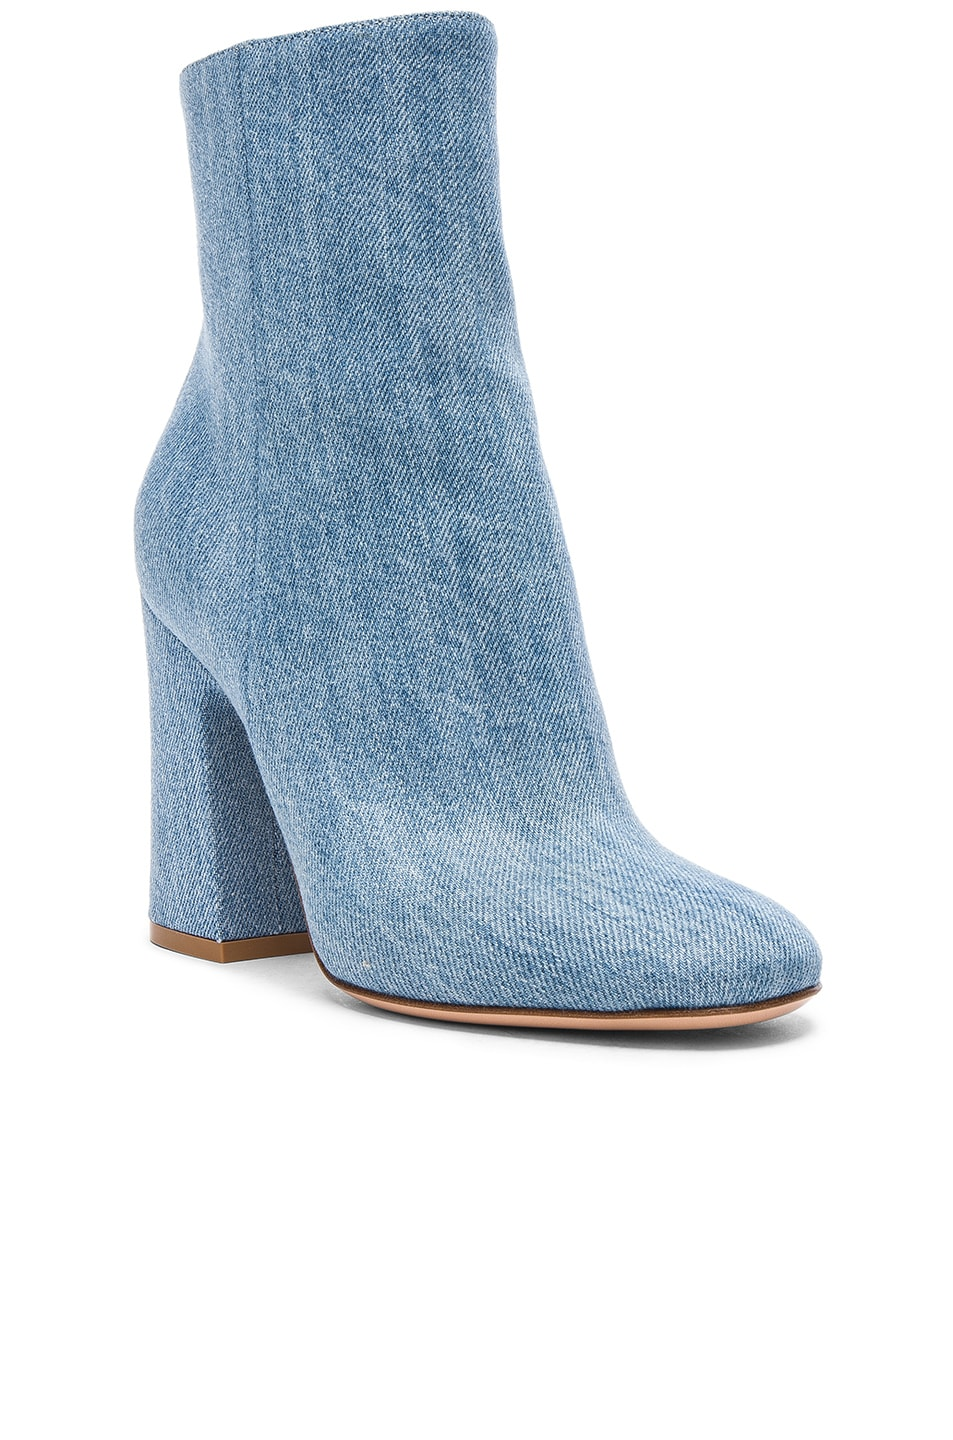 Image 2 of Gianvito Rossi Denim Shelly Booties in Stonewash